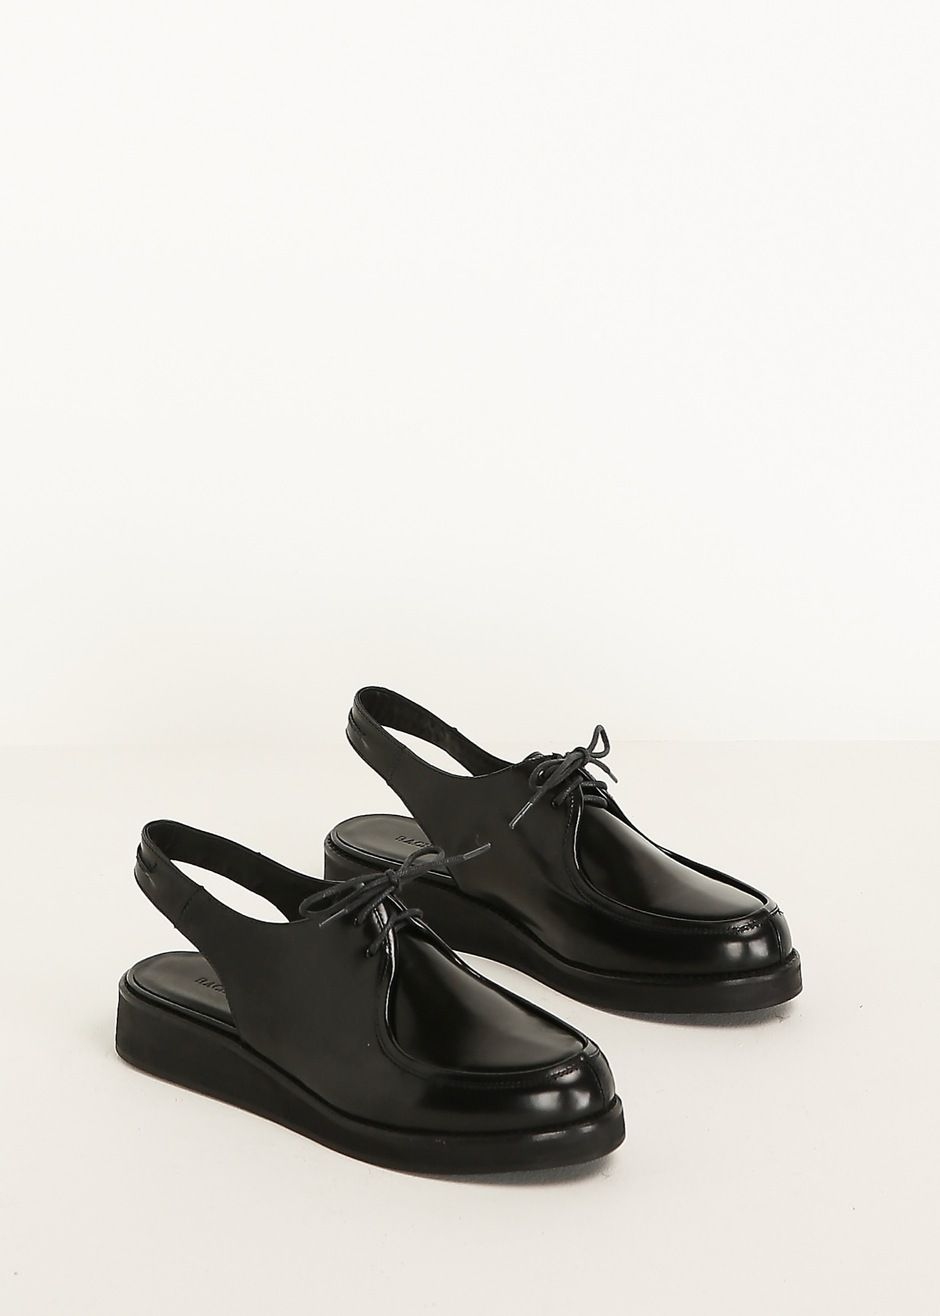 Patent Comey wedge black by leather slingback in Rachel oxford rxqU4wrTg